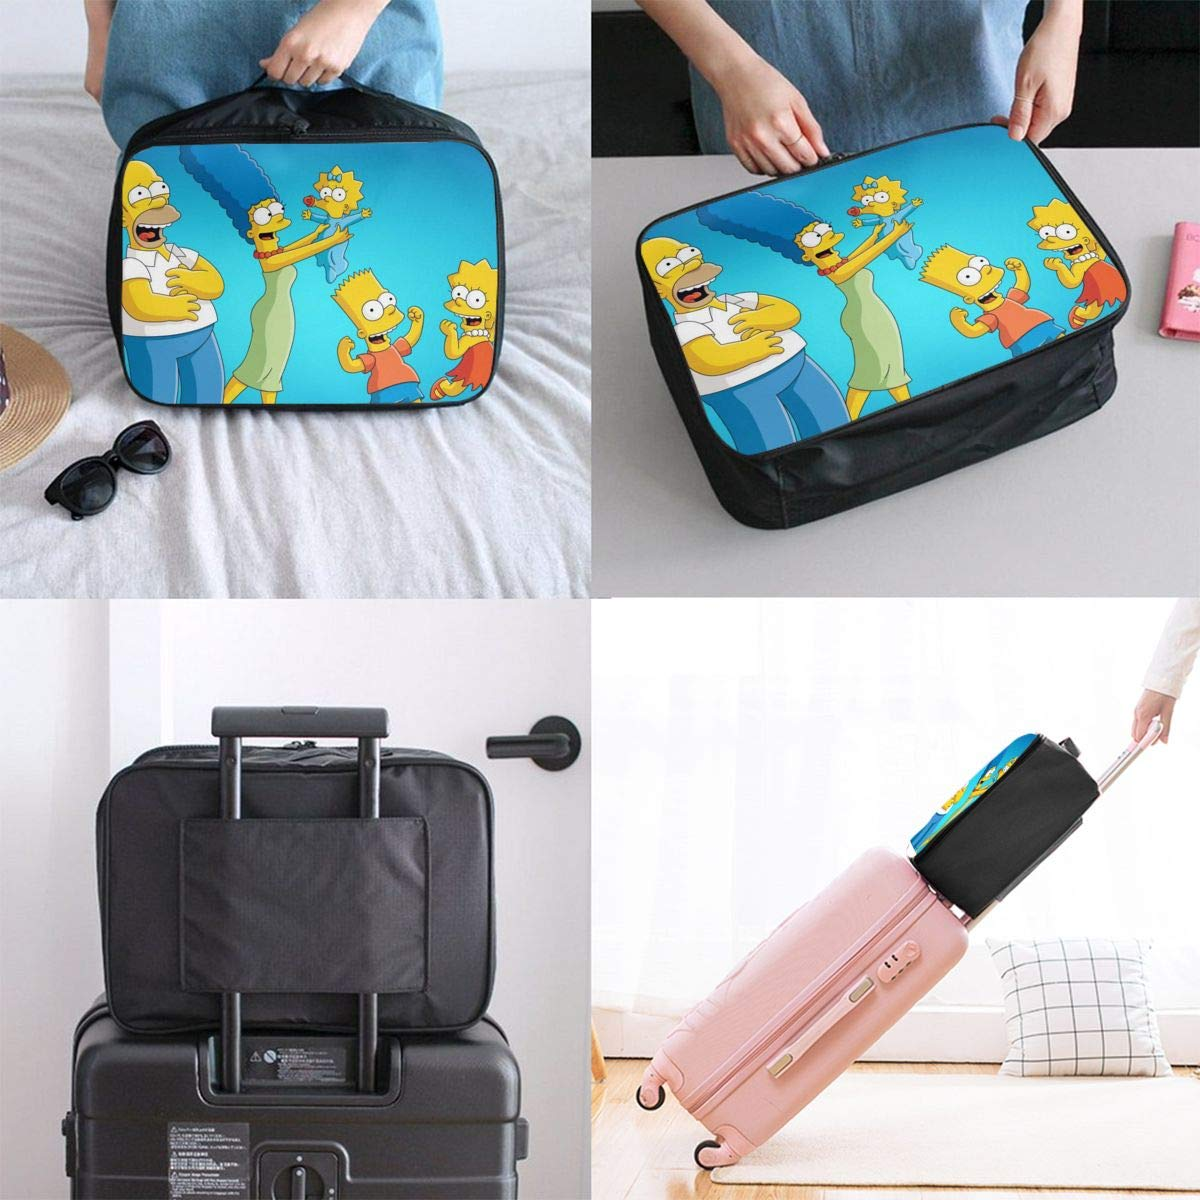 The Simps/_ons Customize Casual Portable Travel Bag Suitcase Storage Bag Luggage Packing Tote Bag Trolley Bag